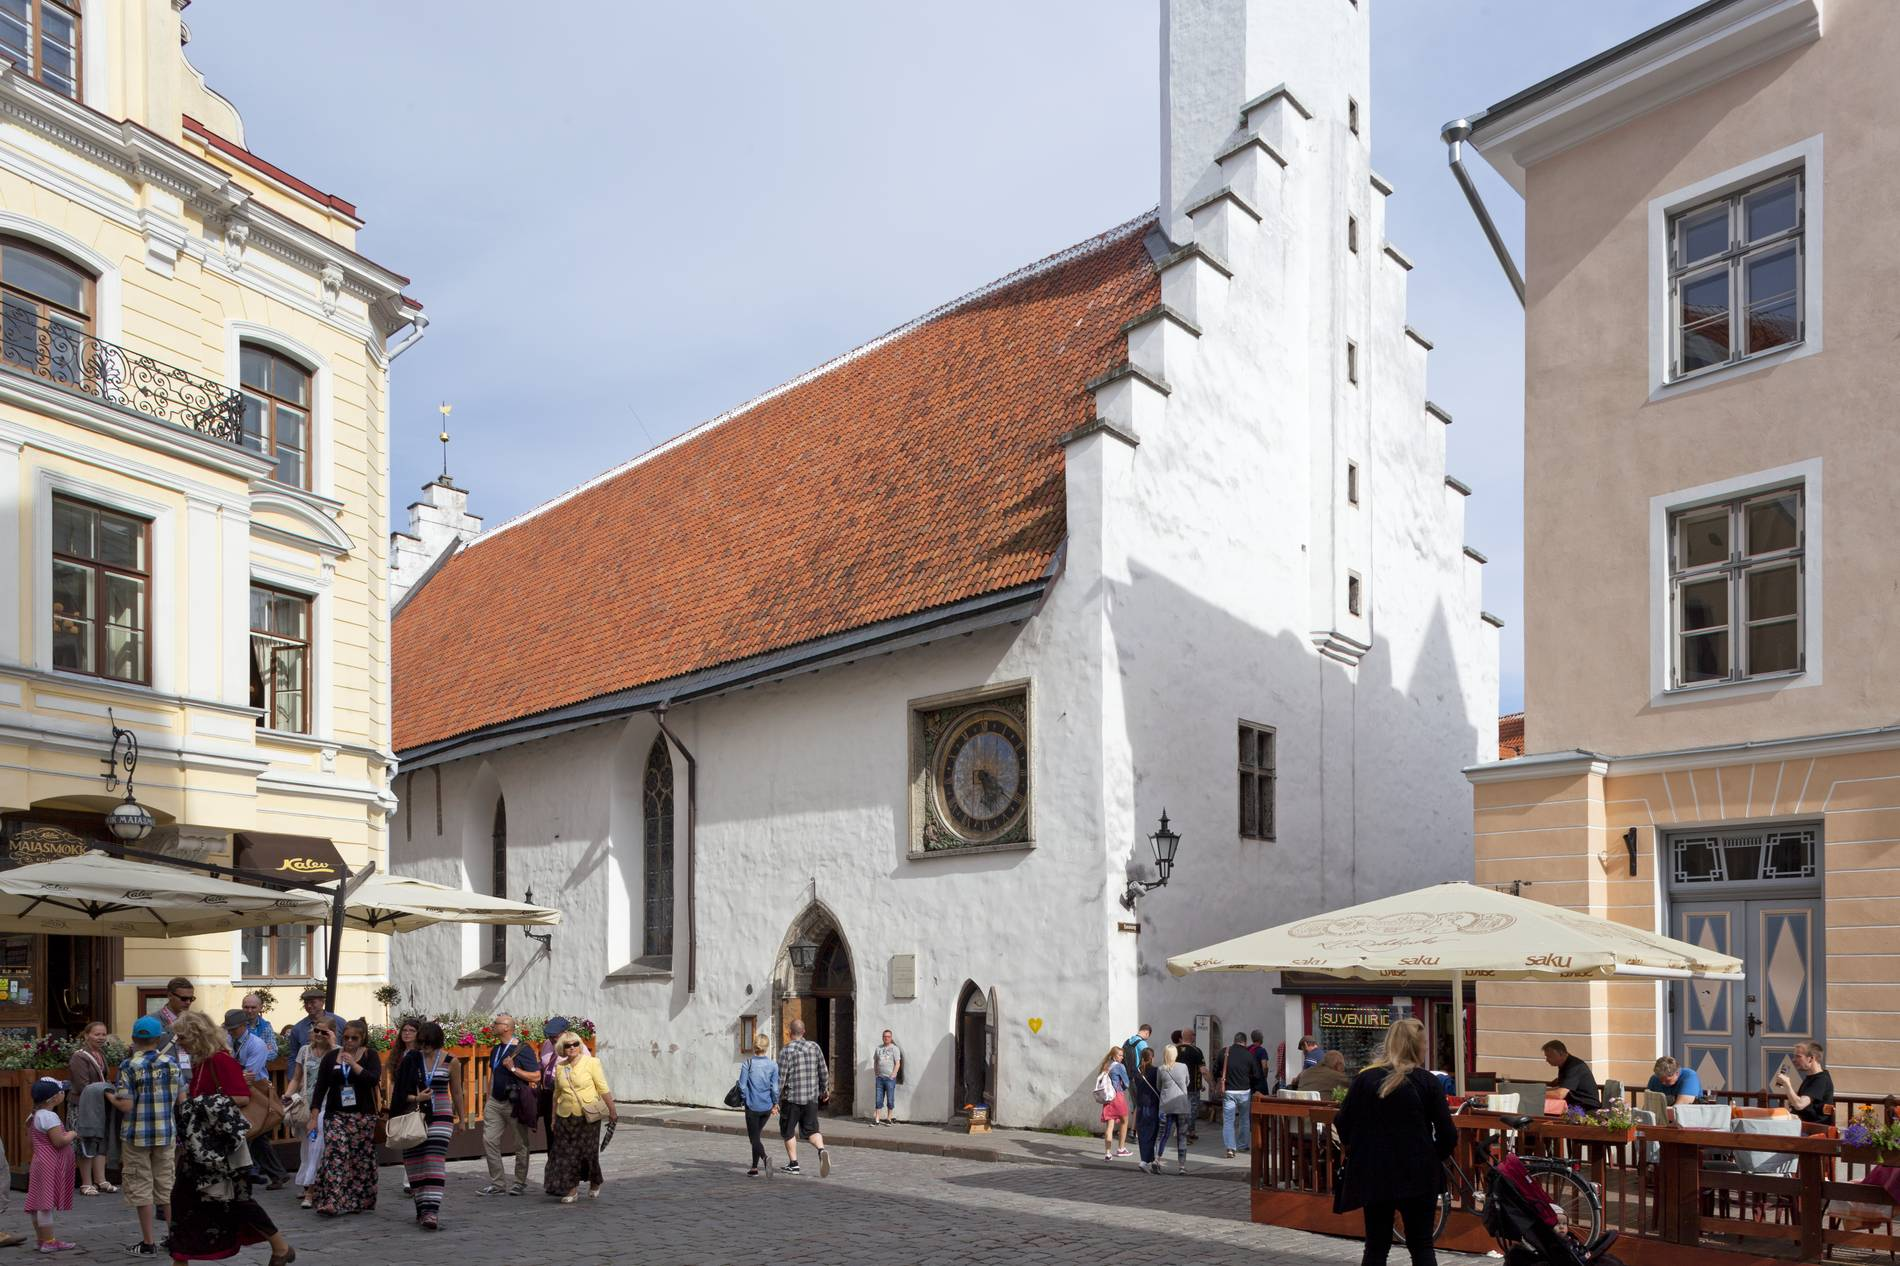 View of the Holy Spirit Church in the Old Town of Tallinn, Estonia